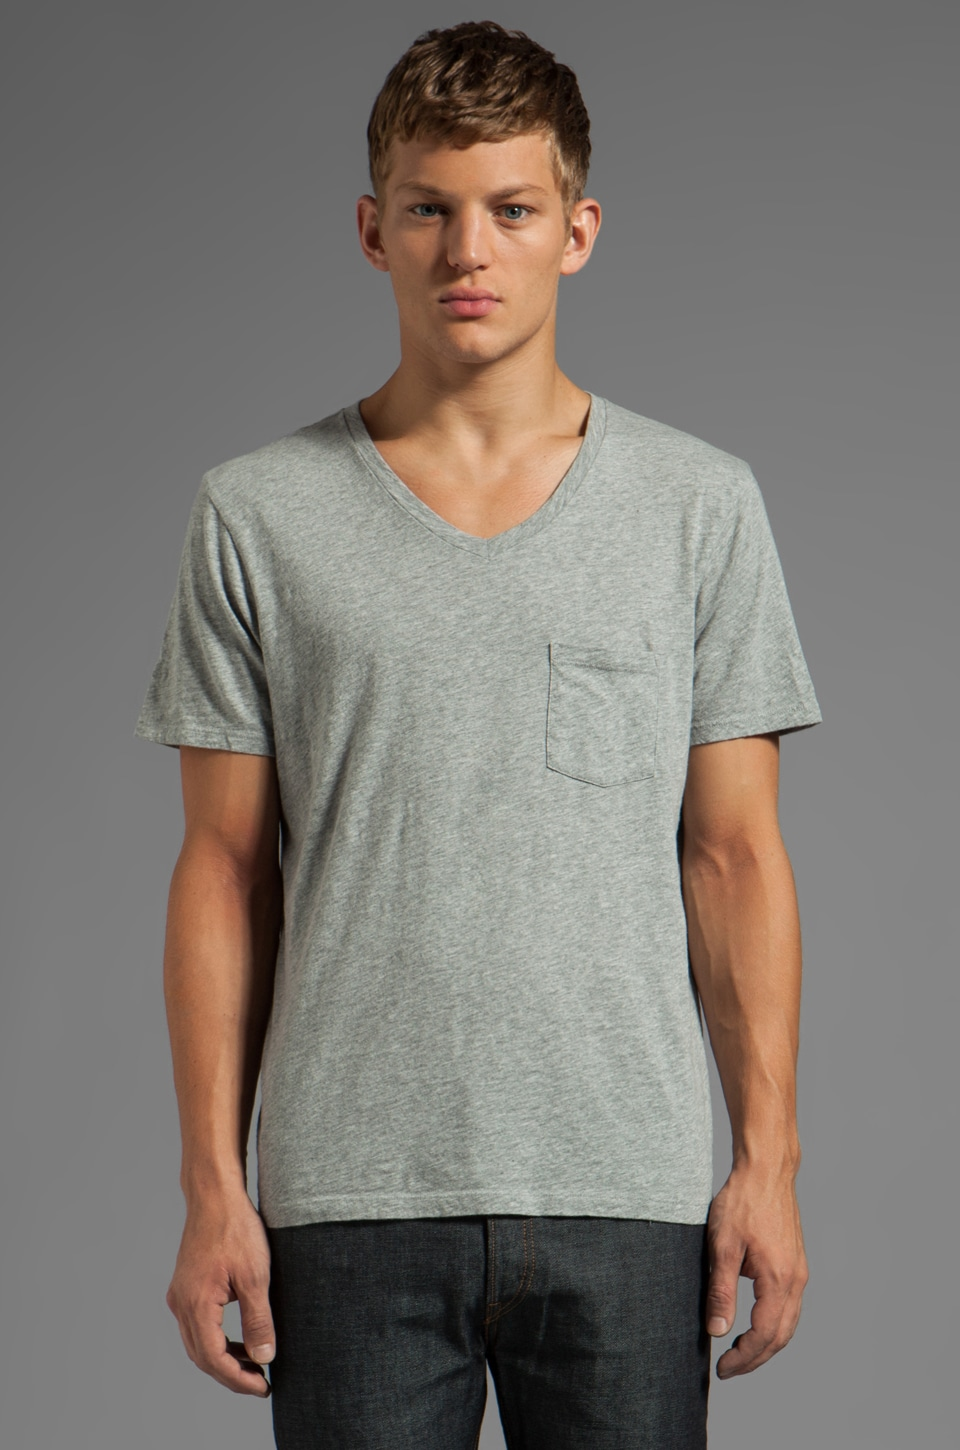 7 For All Mankind V-Neck Pocket Tee in Heather